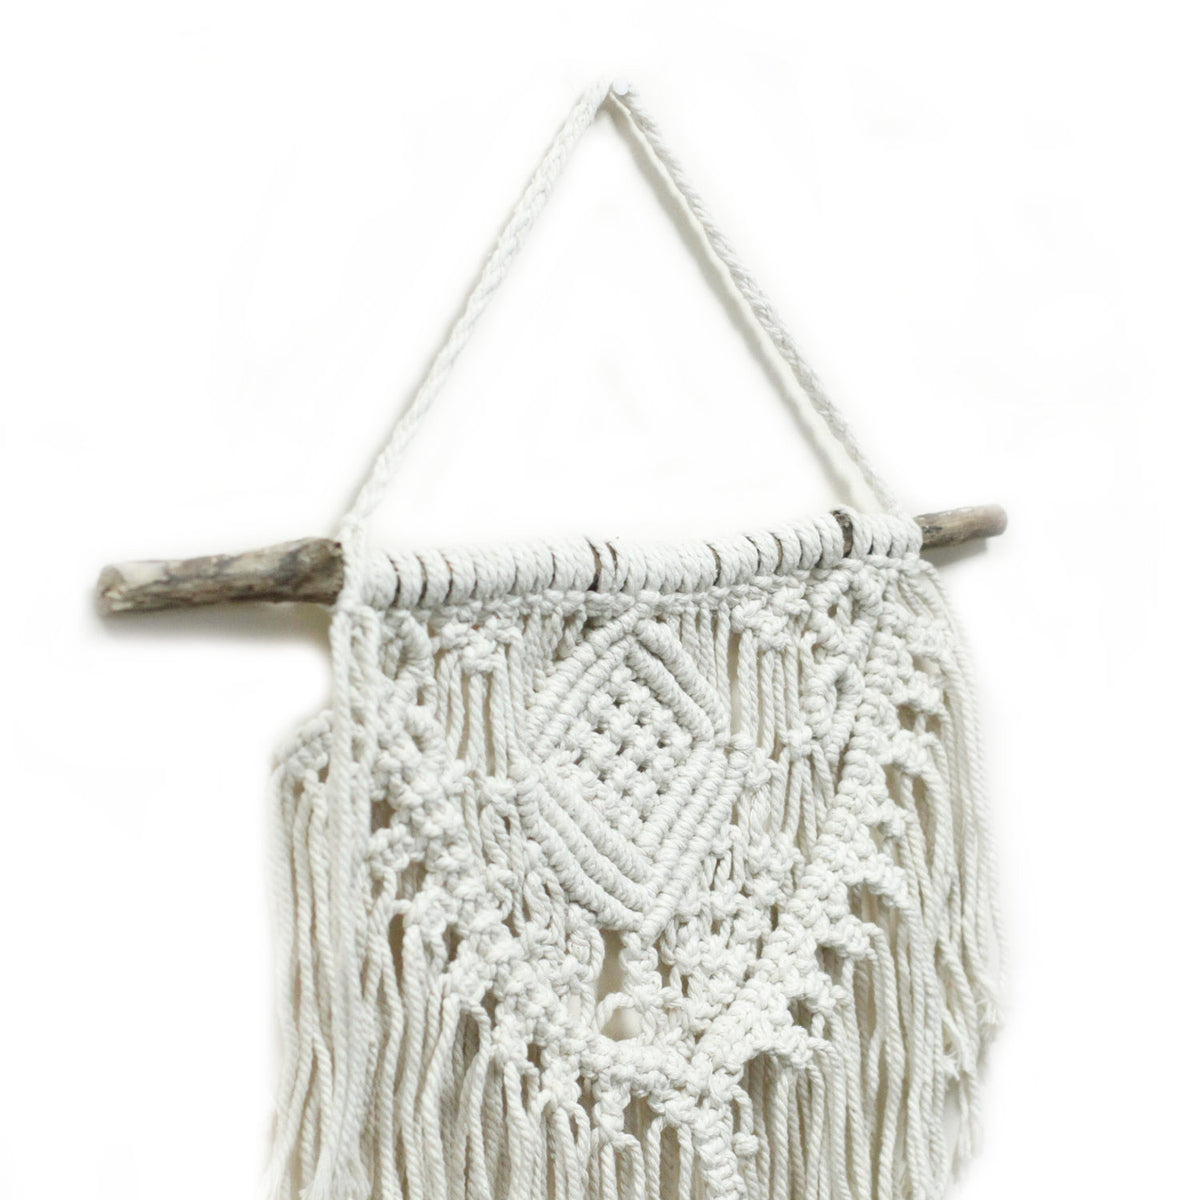 Macrame Wall Hanging - Home & Heart - Seashore No4